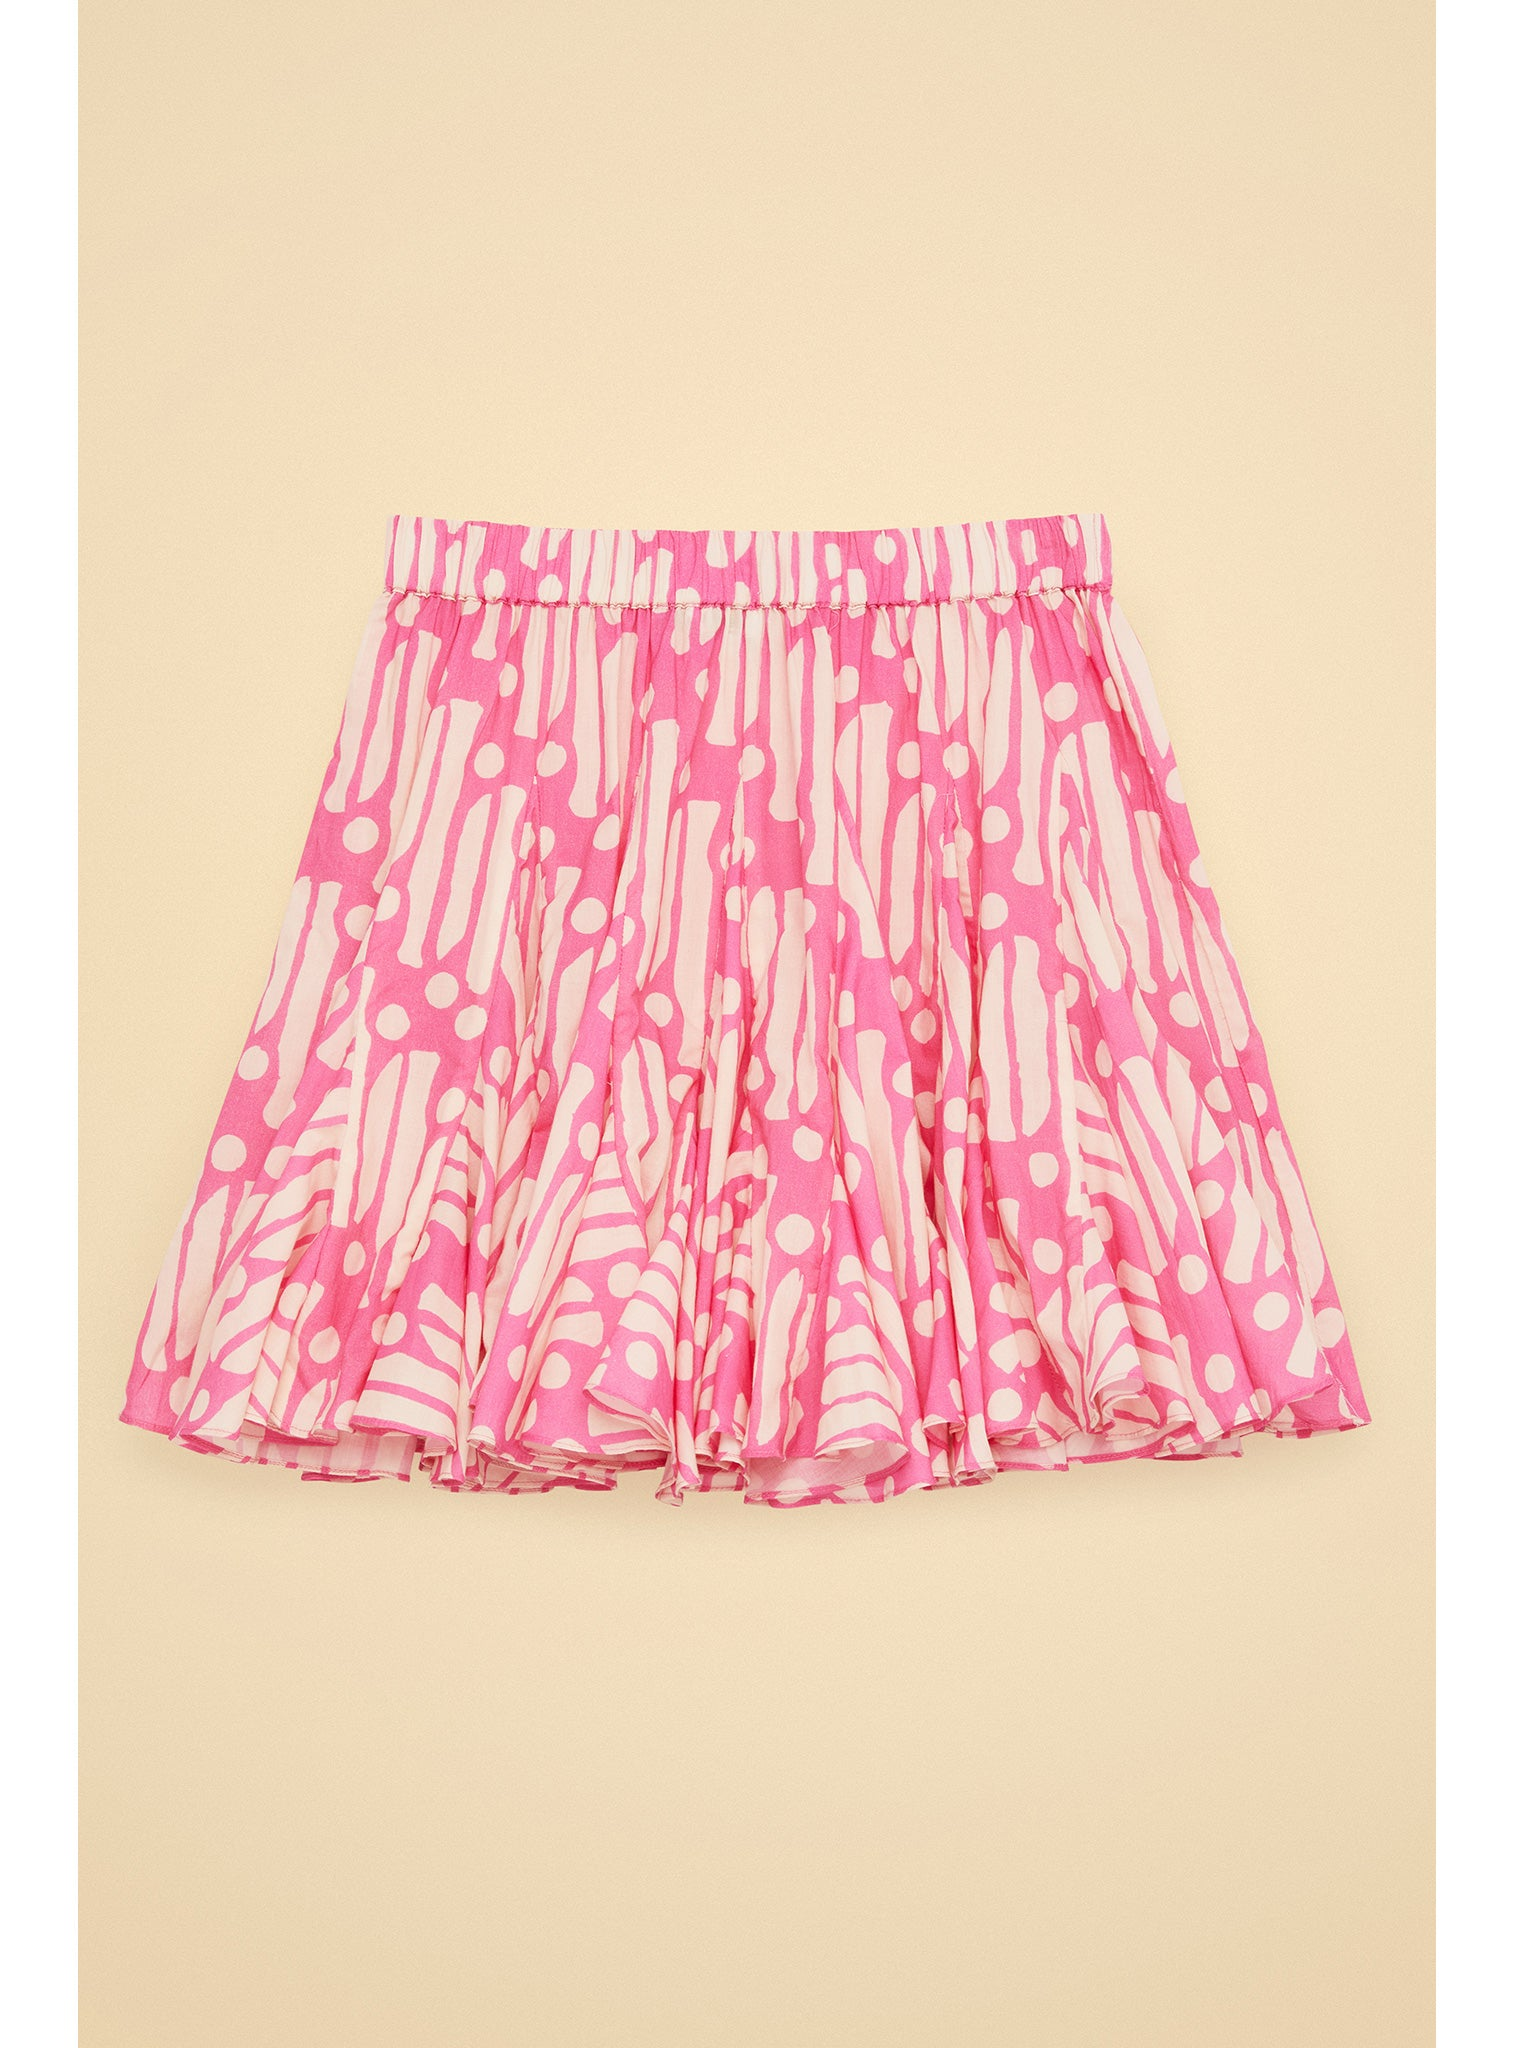 Hilary Skirt in Pink Batik